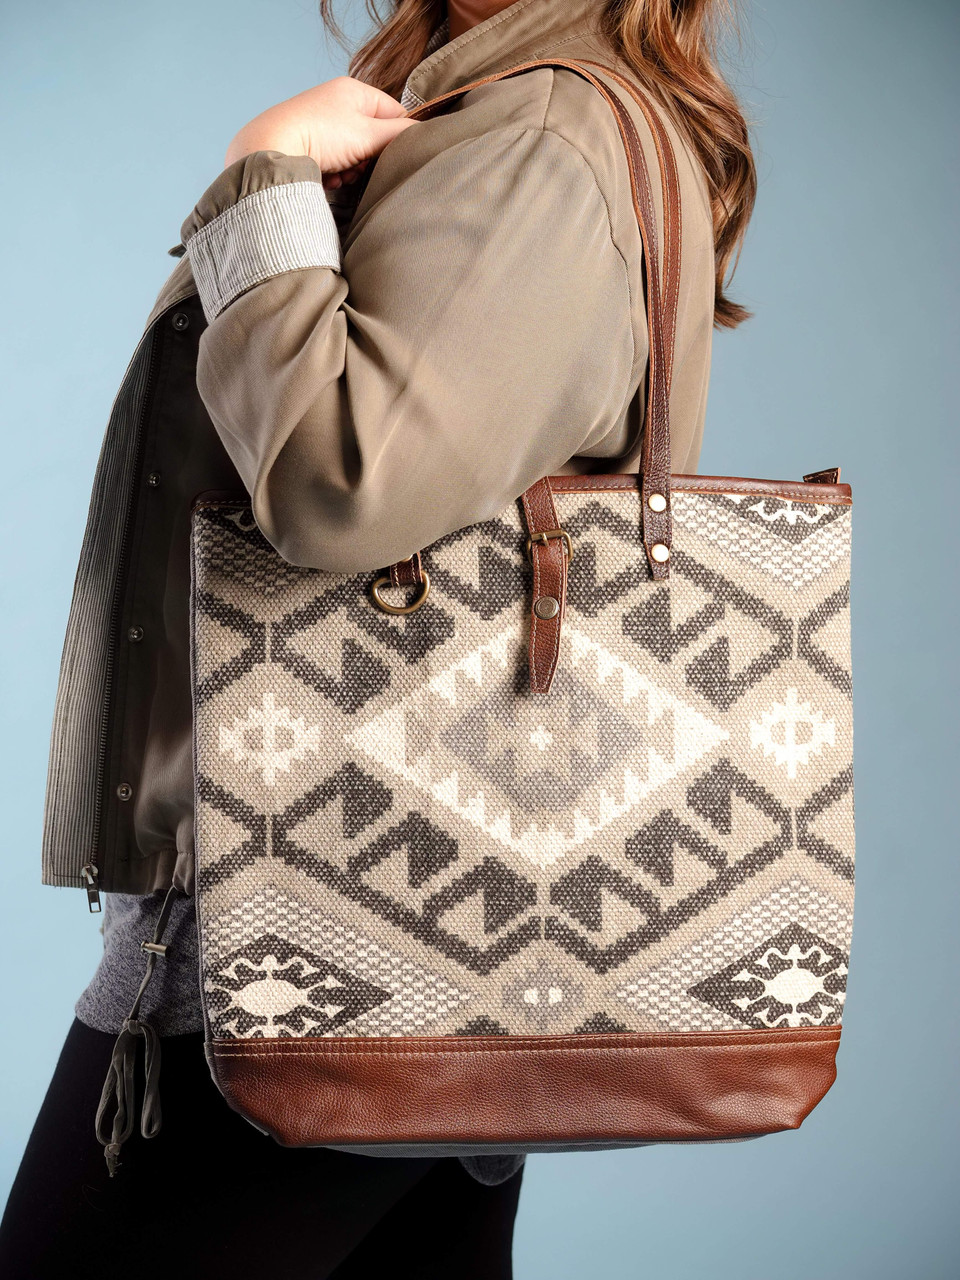 Leather, canvas & rug tote. The front has a natural, grey and blue southwest print and the back is plain canvas with a zipper closure.Interior has double open pockets and a single pocket with zipper.